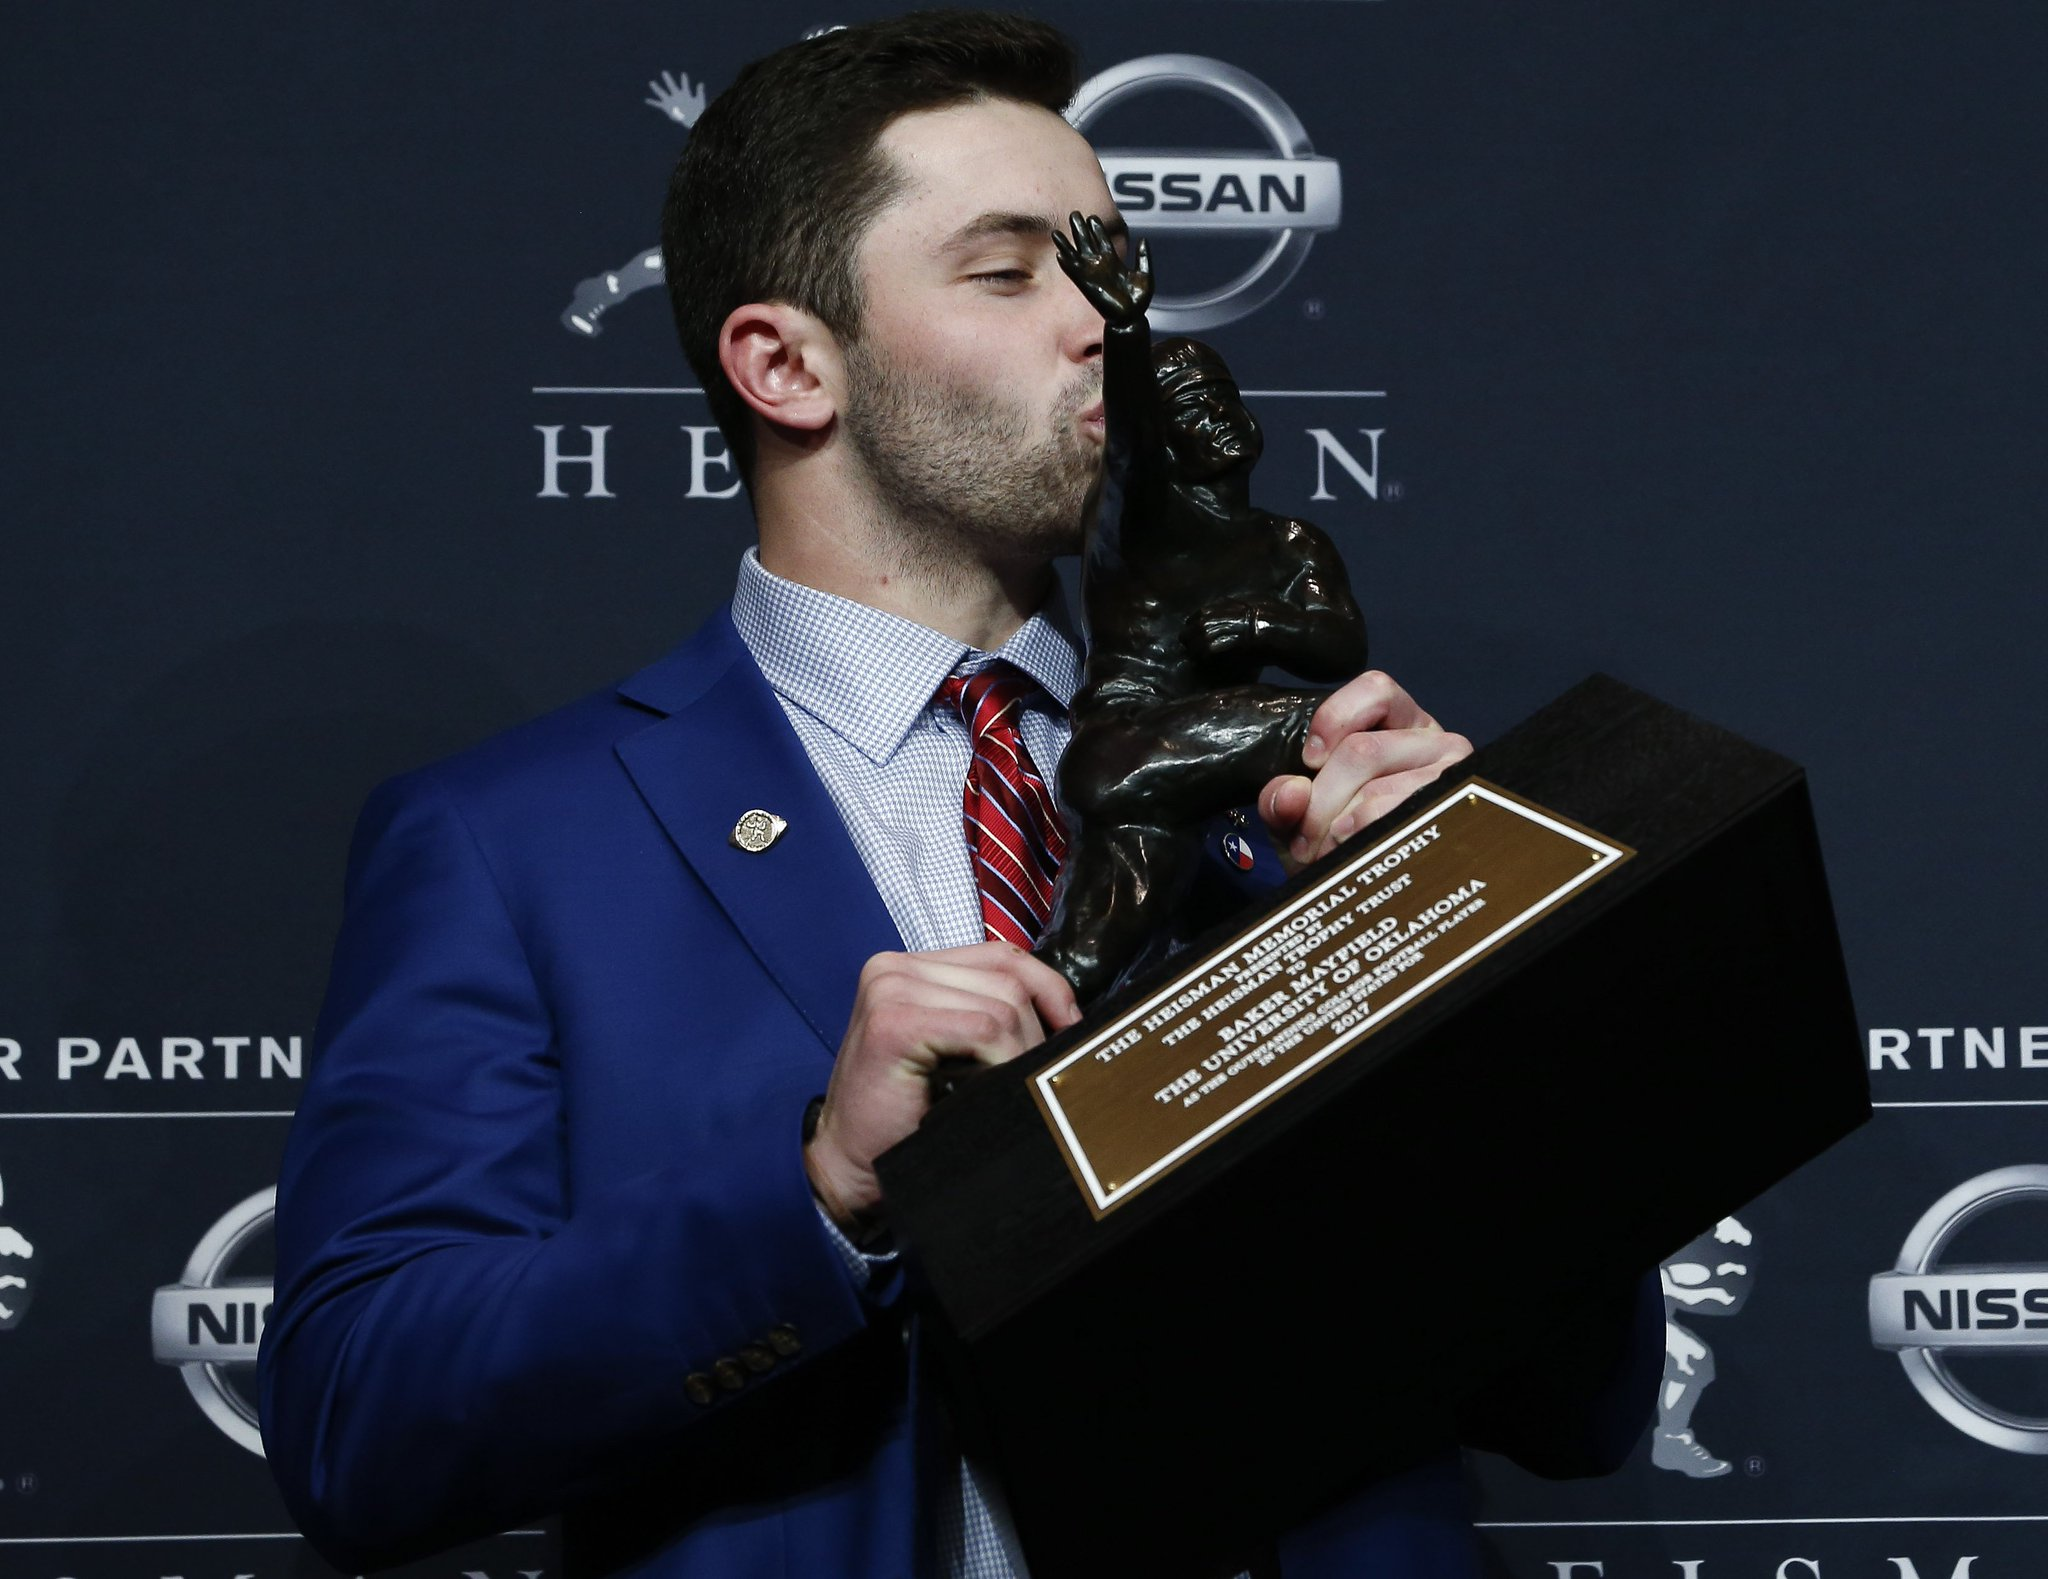 While his antics may be questioned, Baker Mayfield's Heisman win should not be questioned https://t.co/iwlJoLkF2z https://t.co/x3rh3fl5jZ